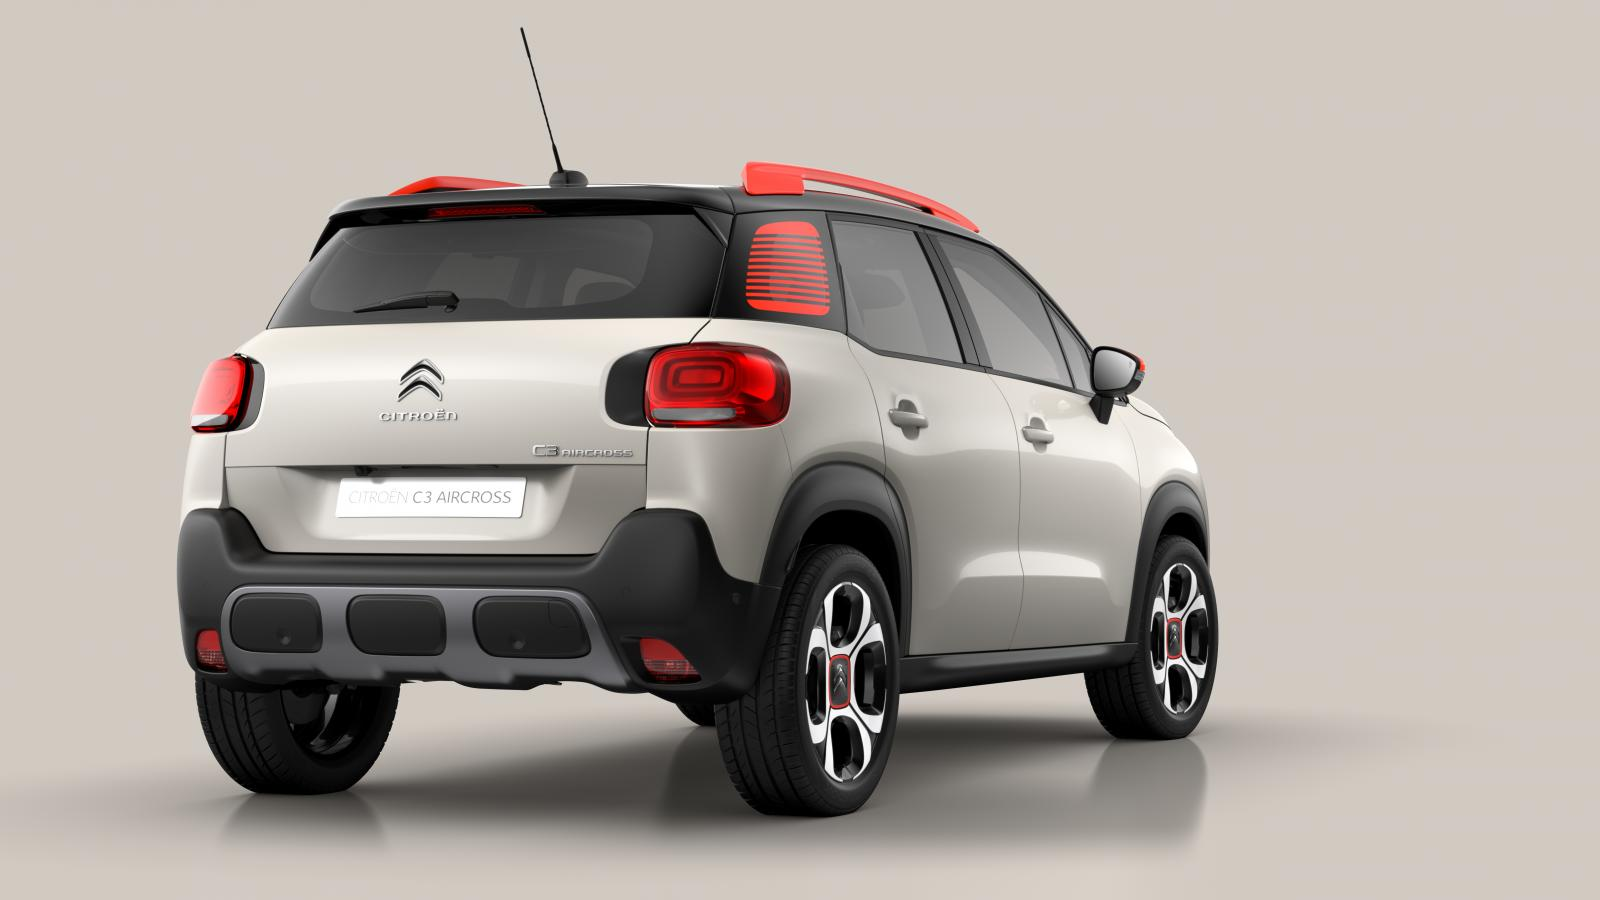 SUV Compact C3 Aircross, pohled 3/4 zadní